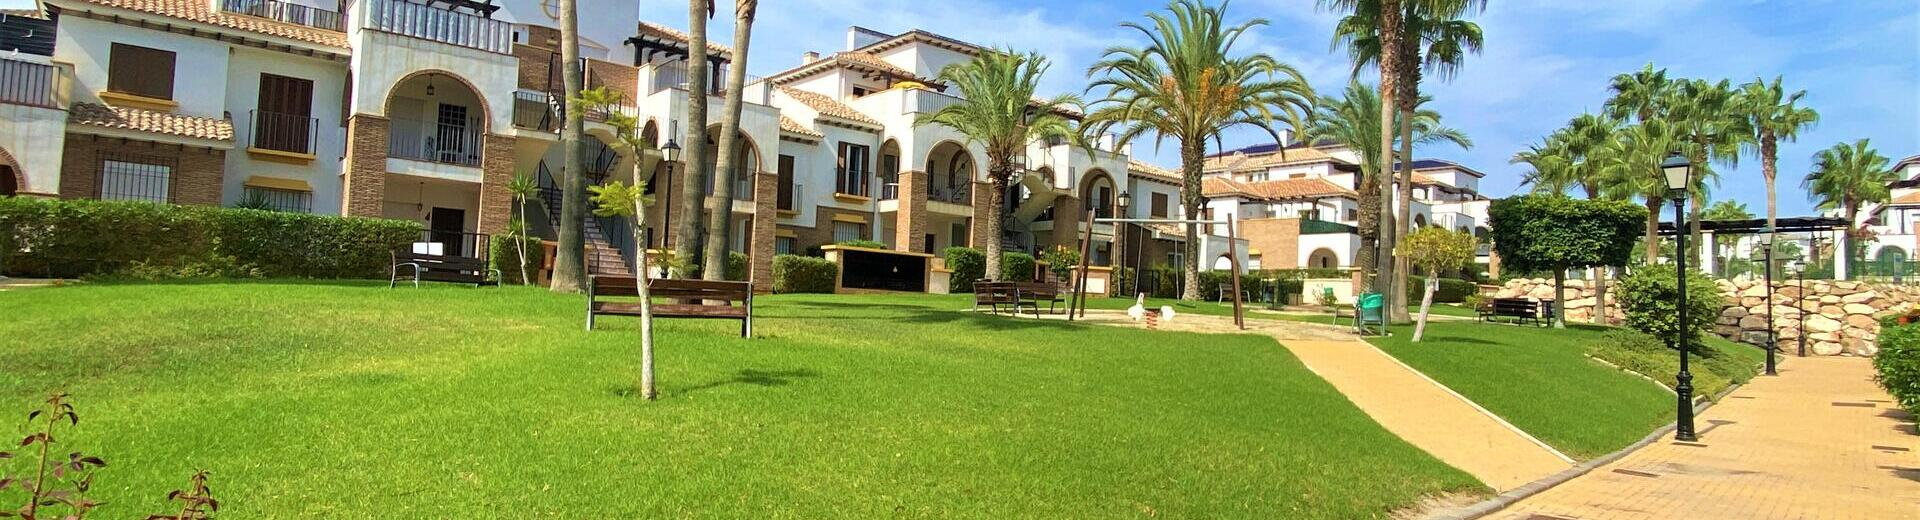 VIP7932: Townhouse for Sale